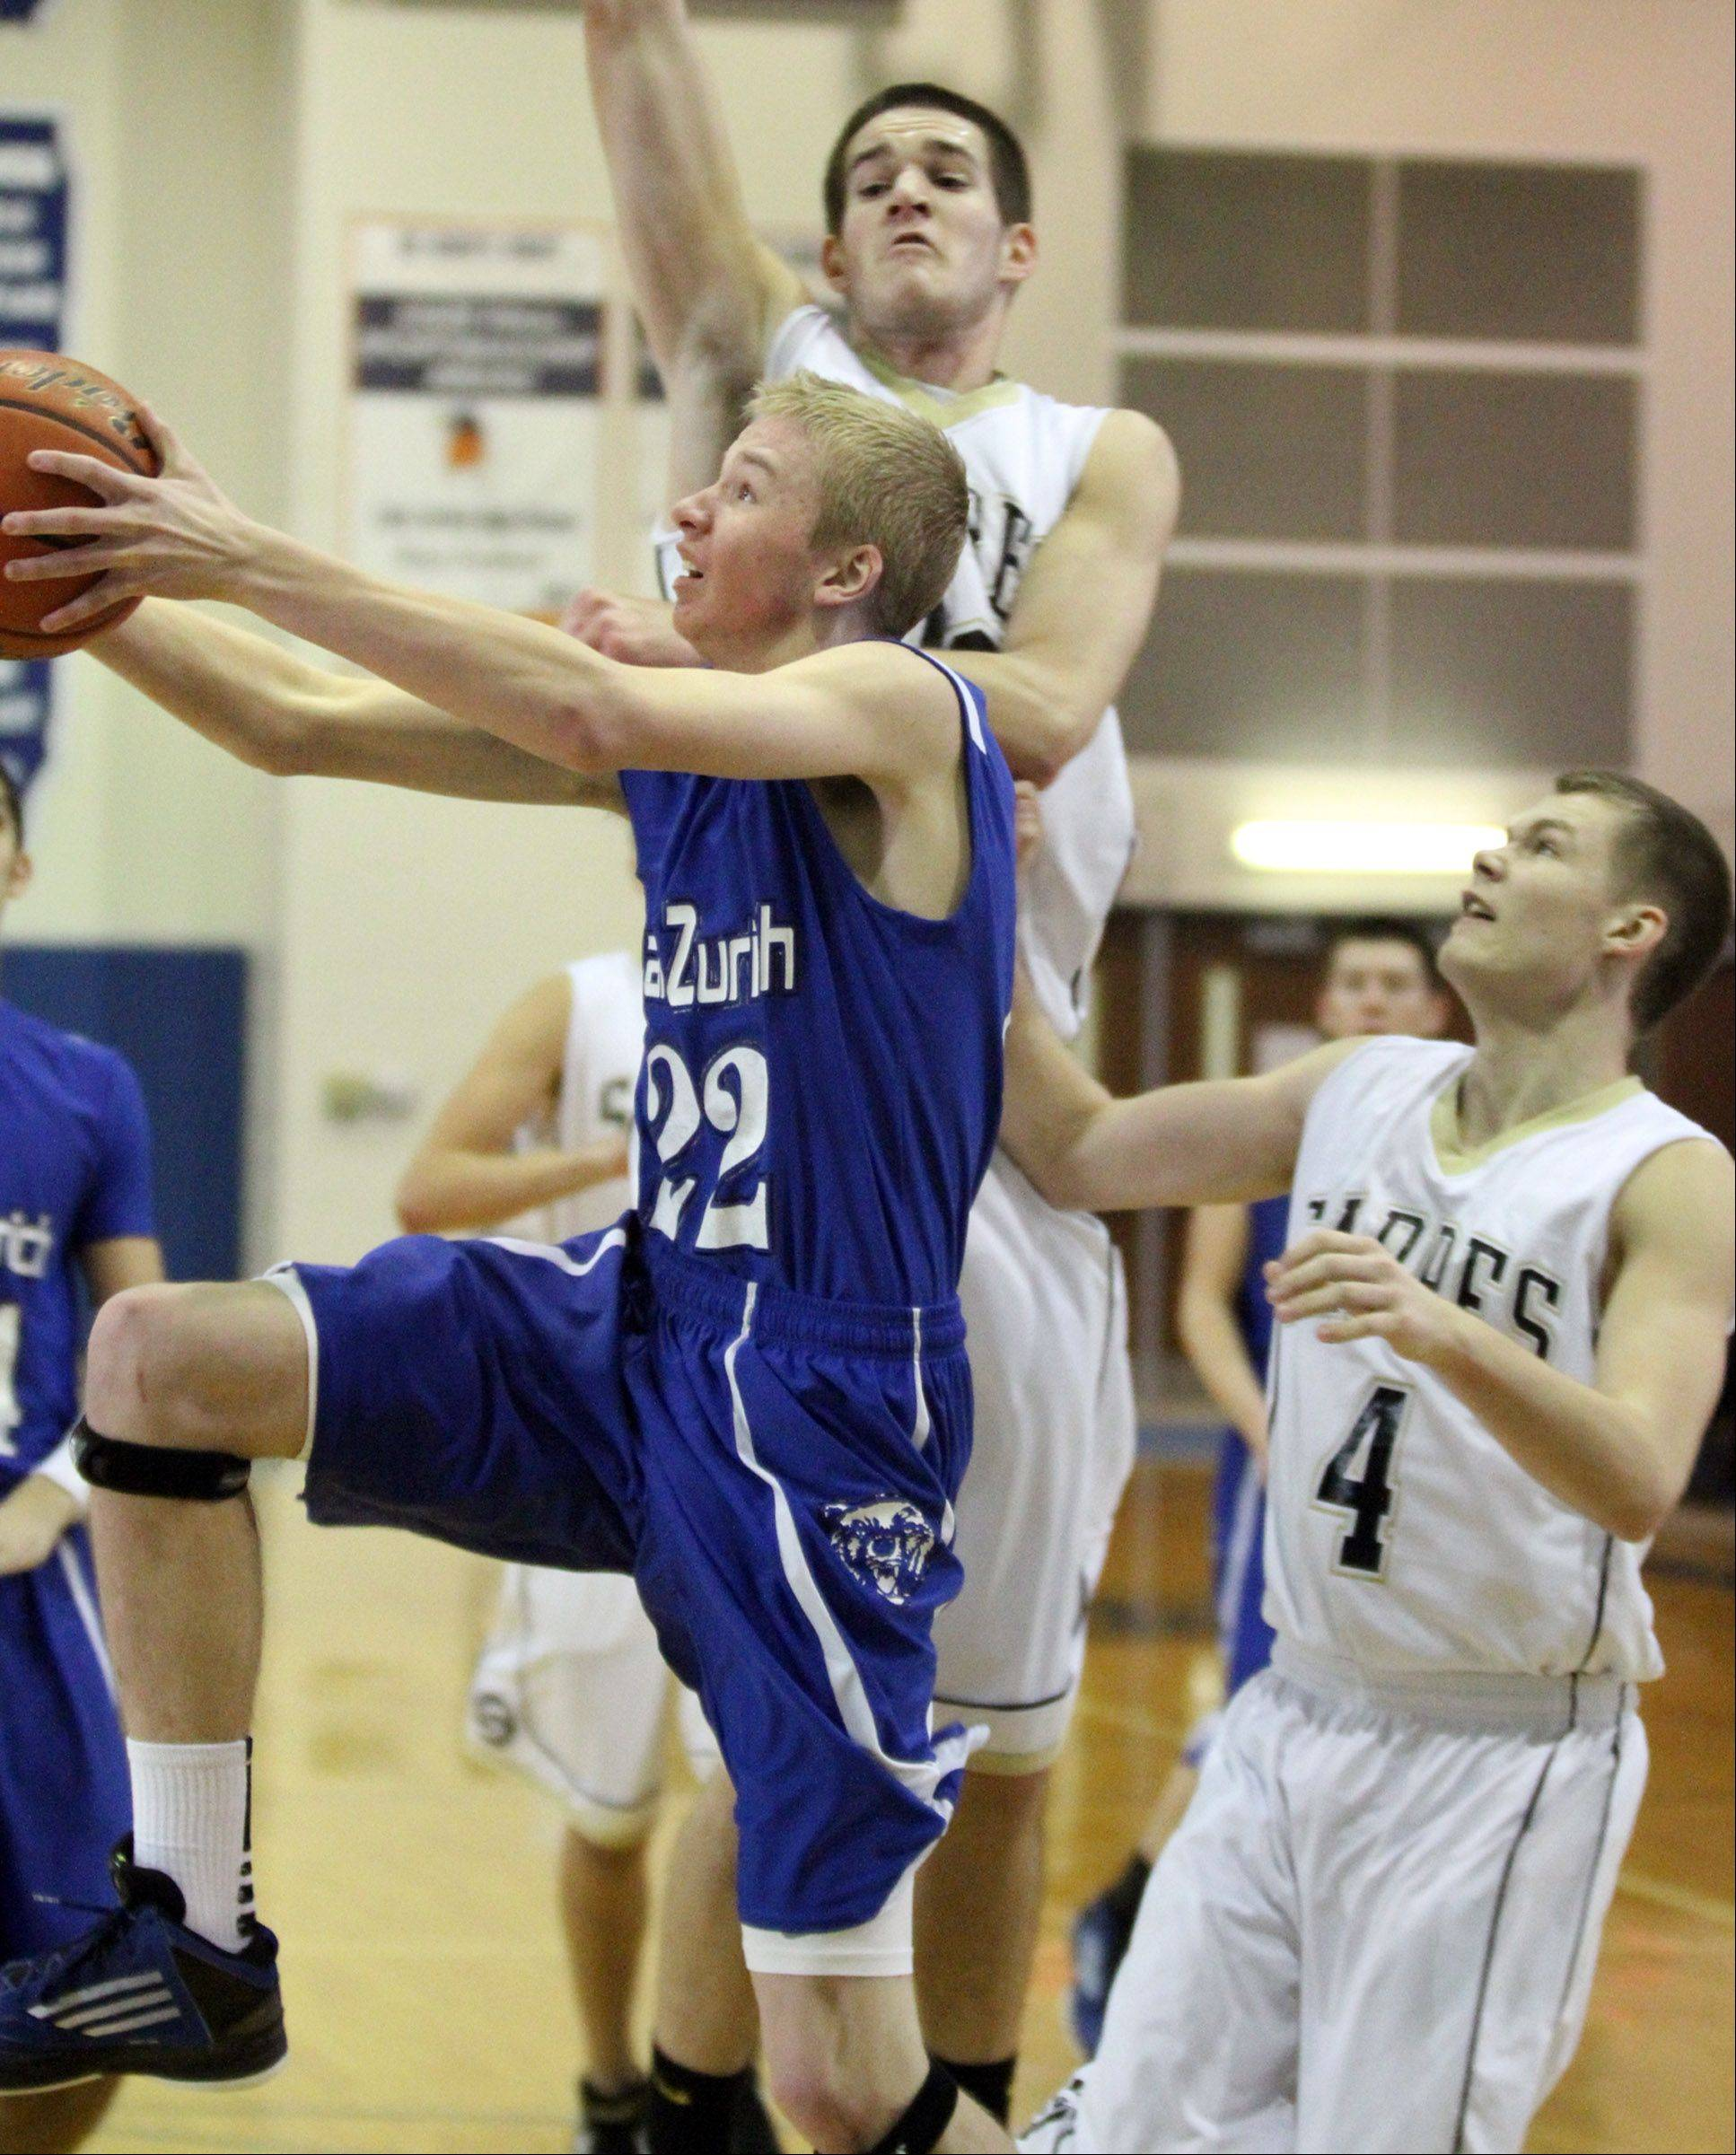 Lake Zurich guard Brad Kruse shoots under the basket past Streamwood defenders Zack Harris, center, and Jacob Siewert at Lake Zurich on Saturday.